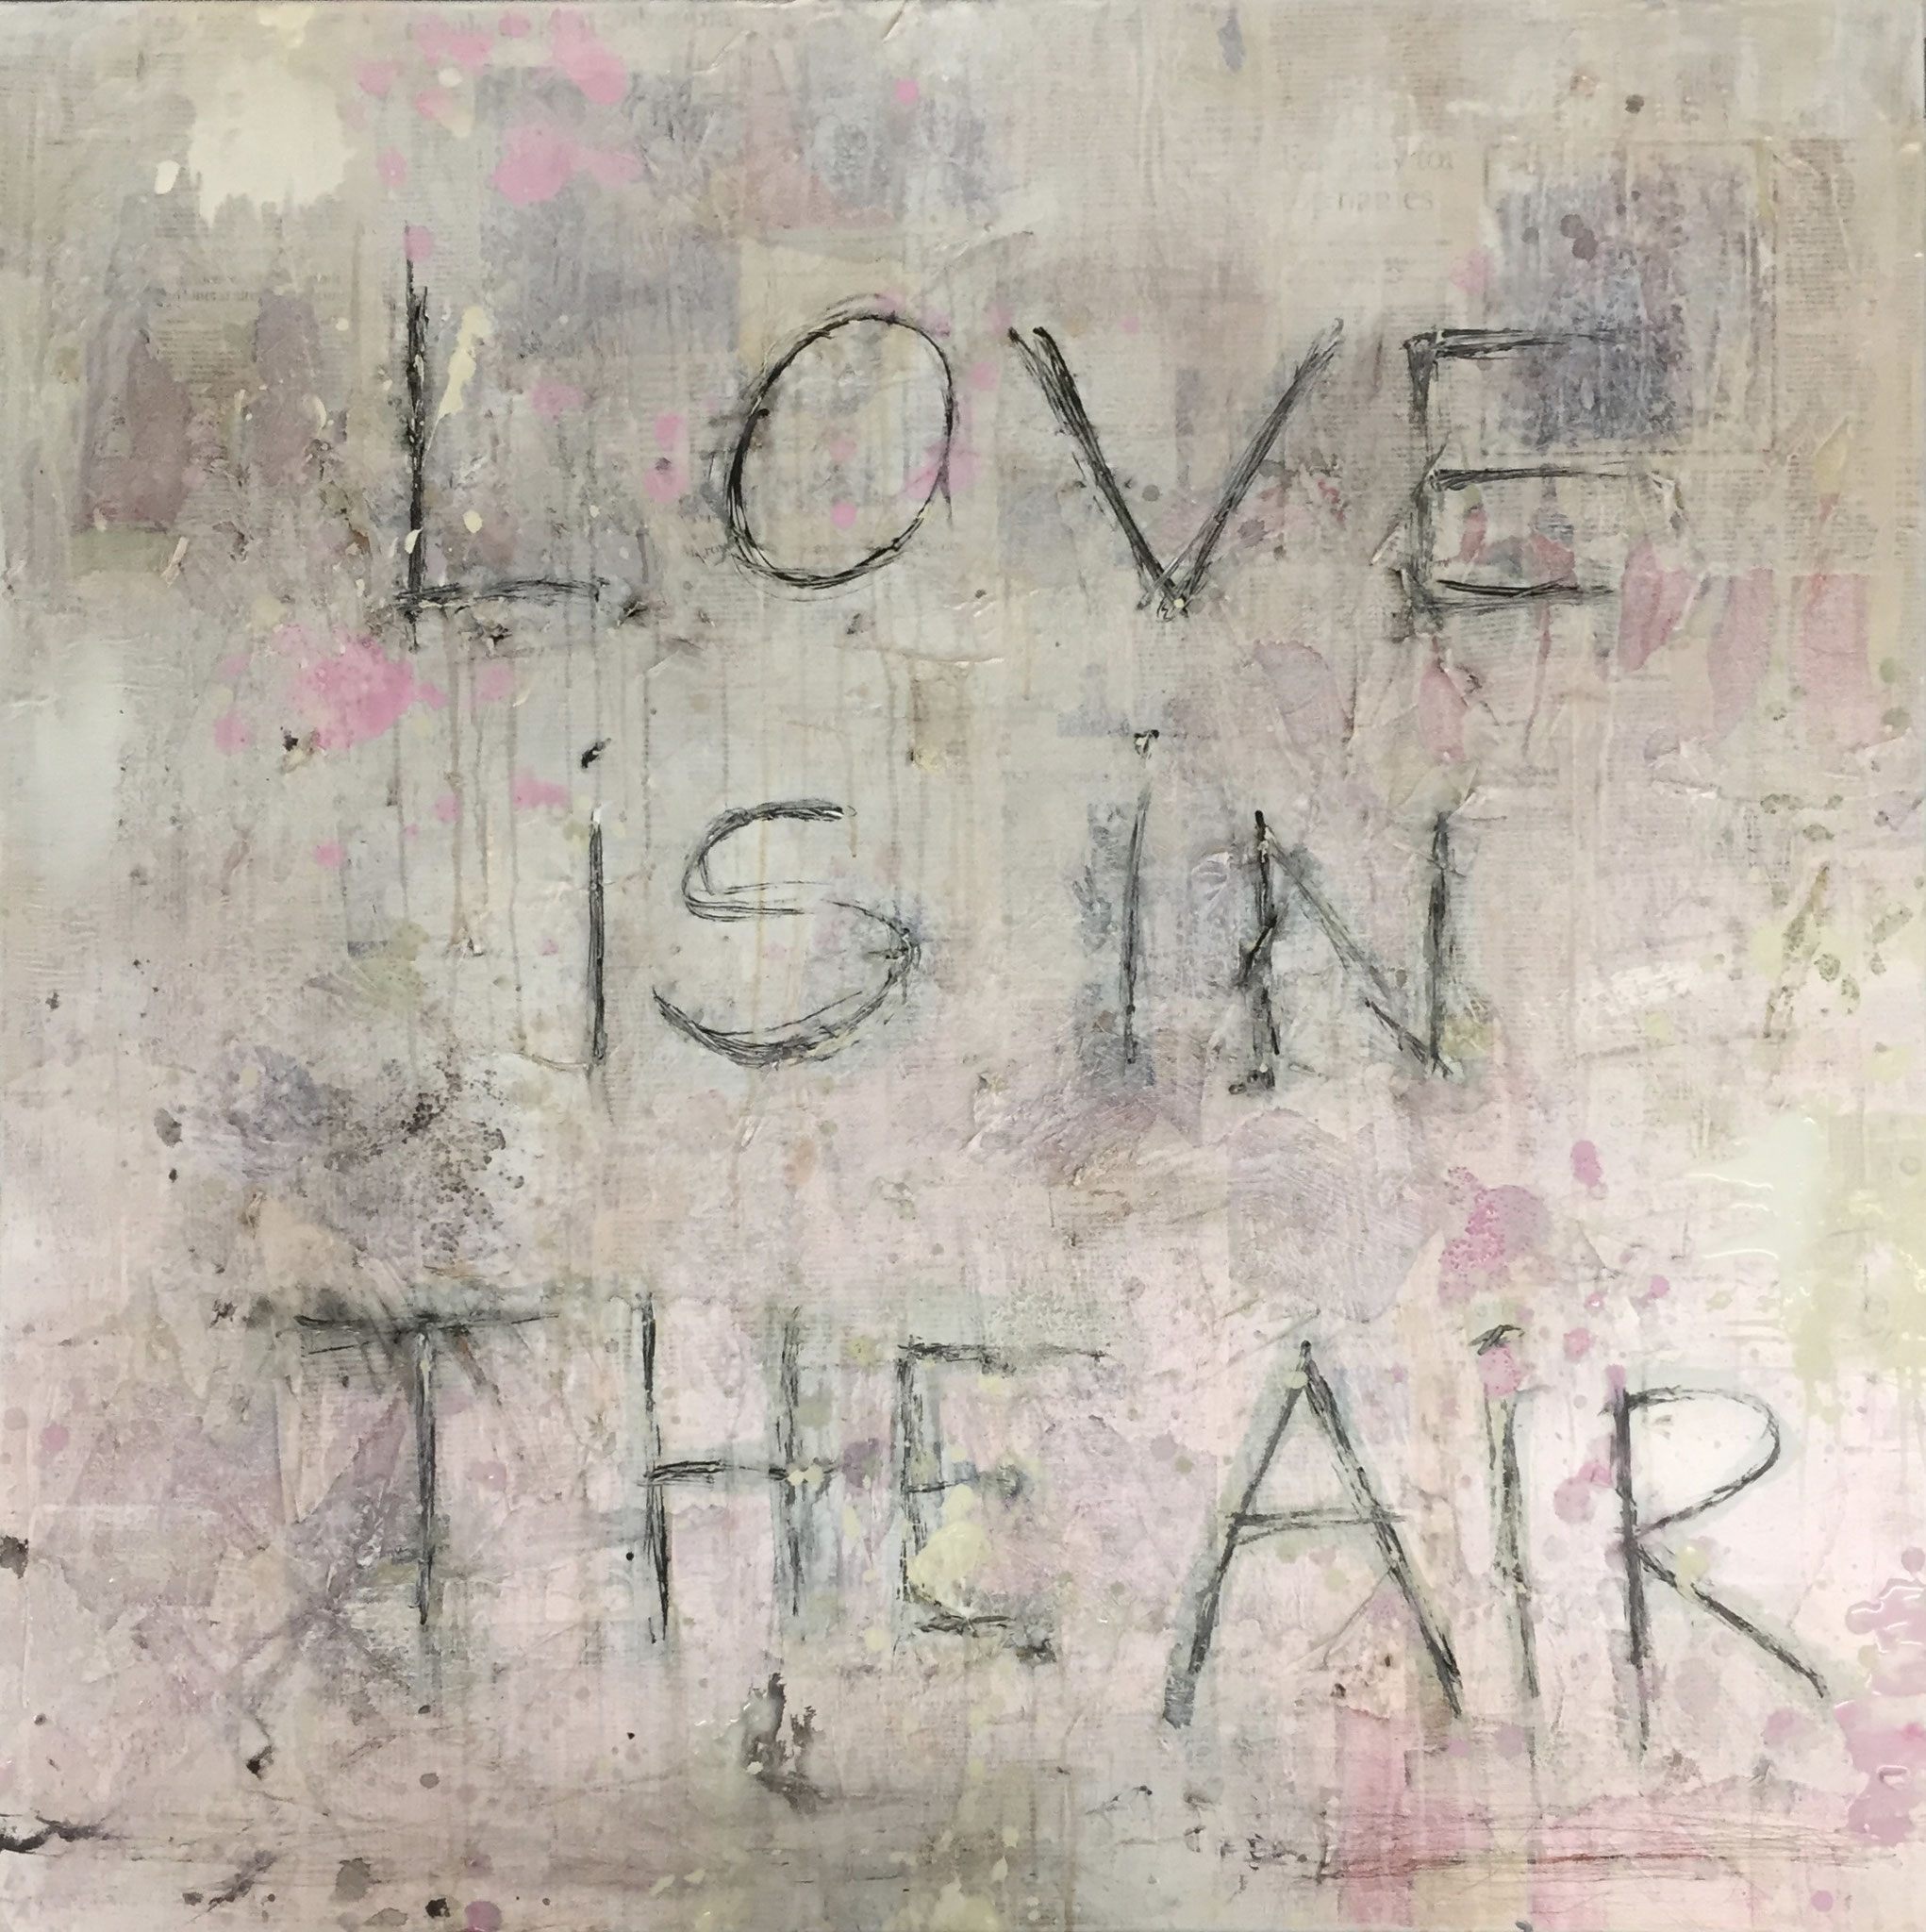 """LOVE IS IN THE AIR"" 2020 Acryl/Collage 100x100"